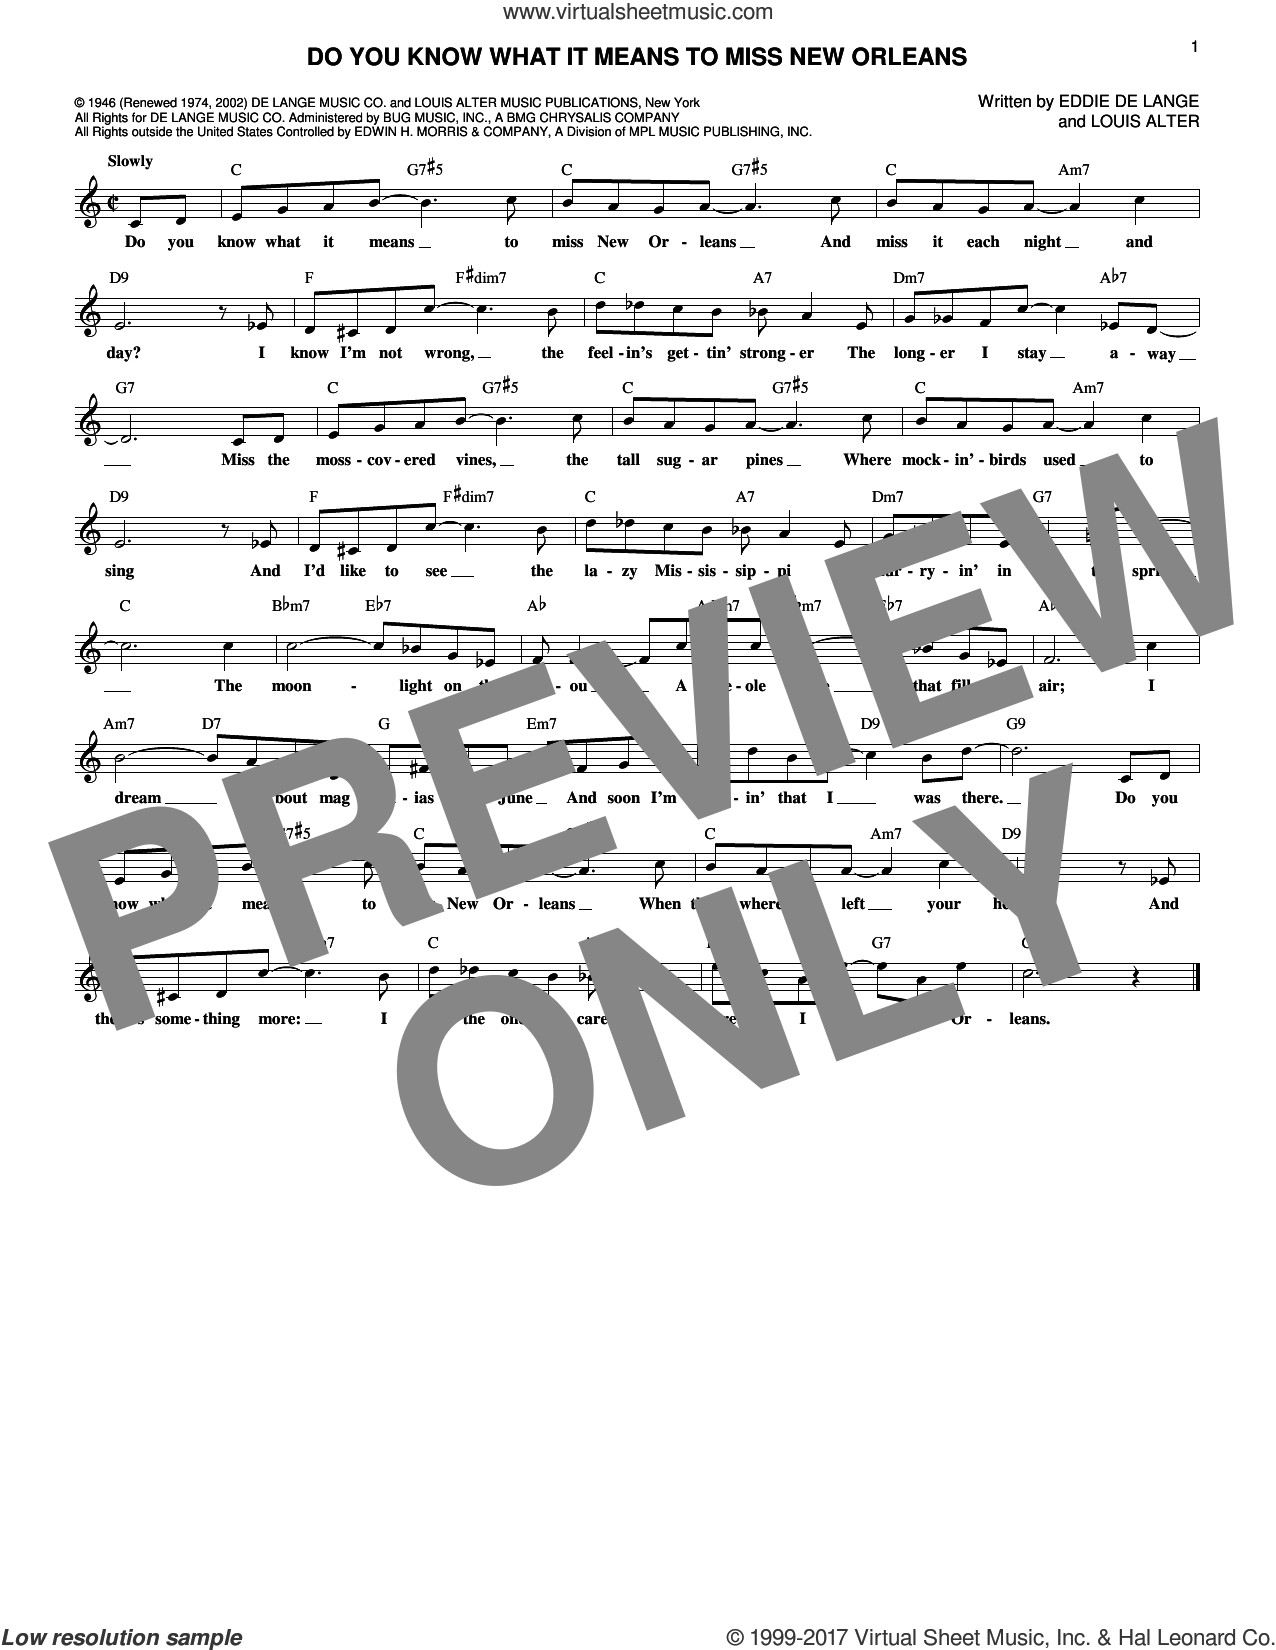 Do You Know What It Means To Miss New Orleans sheet music for voice and other instruments (fake book) by Eddie DeLange and Louis Alter. Score Image Preview.